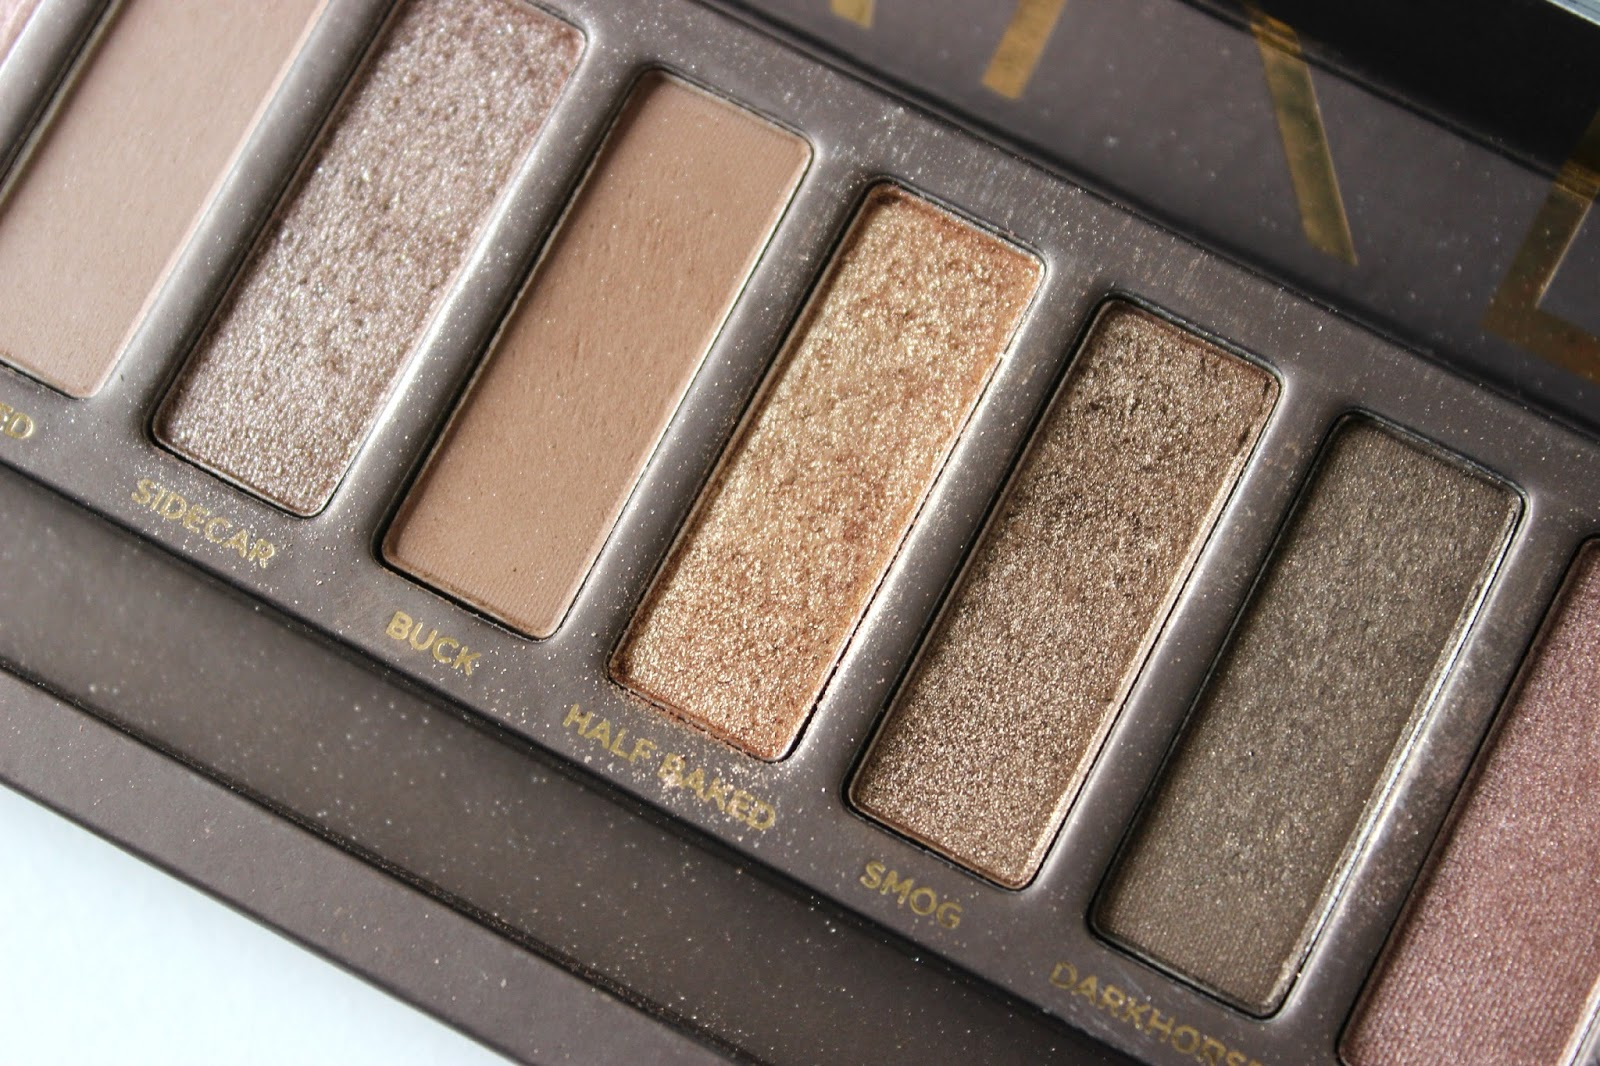 Urban Decay Naked Palette Review - Tattooed Tealady-3572